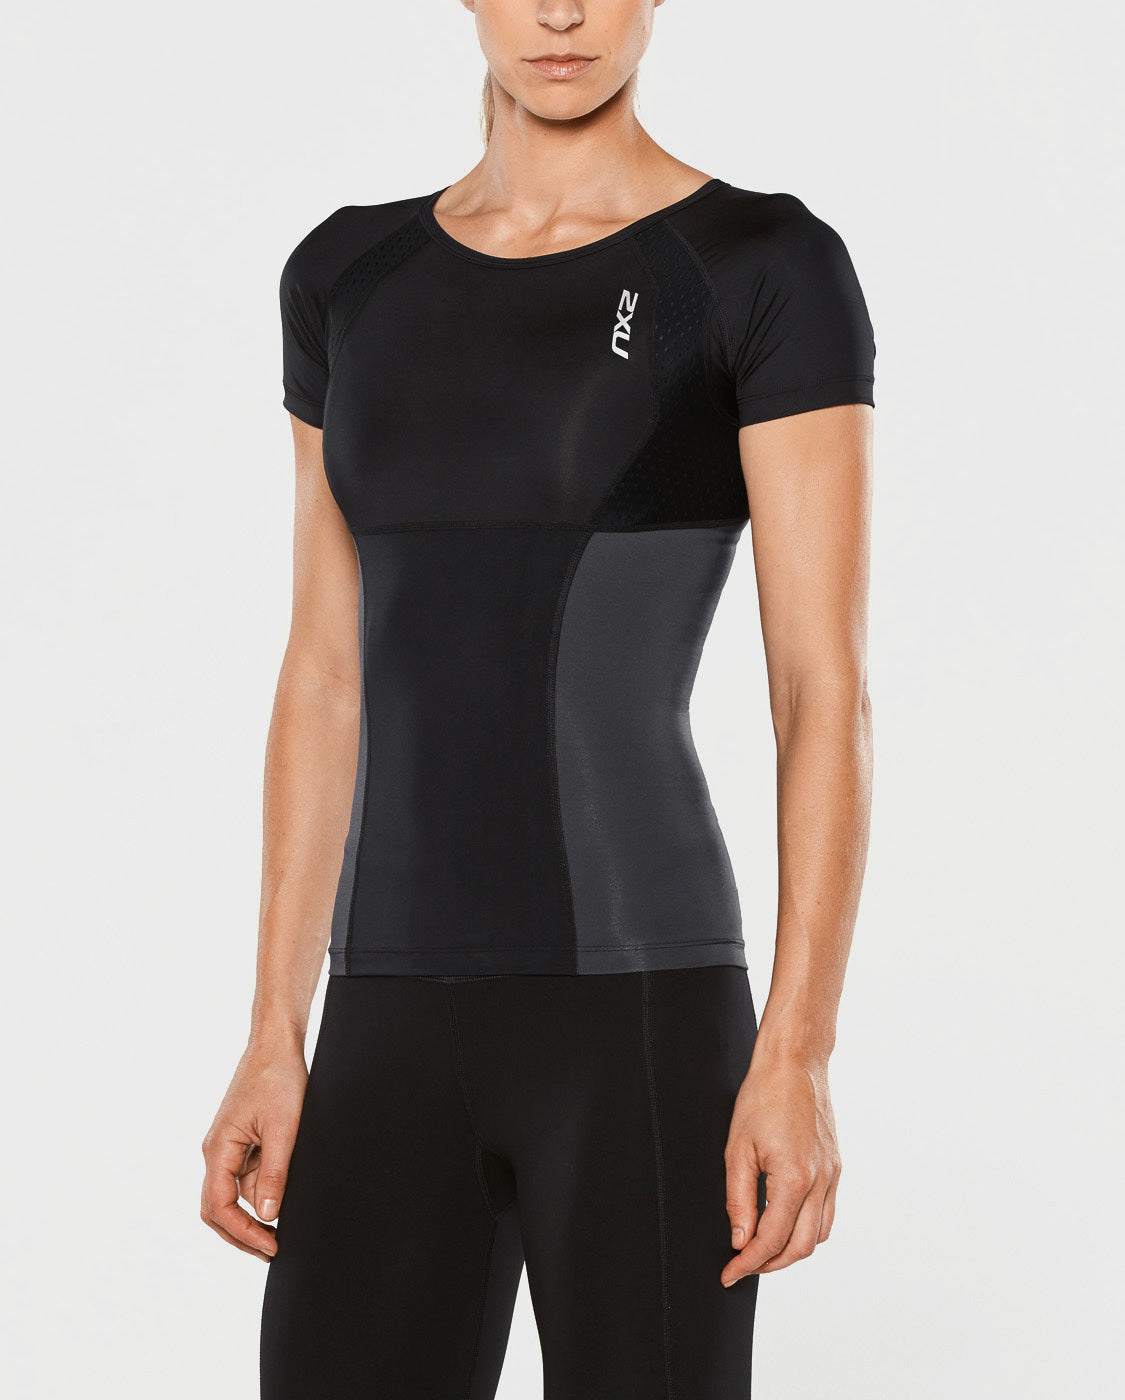 2XU Elitecore S/S Top Women Black